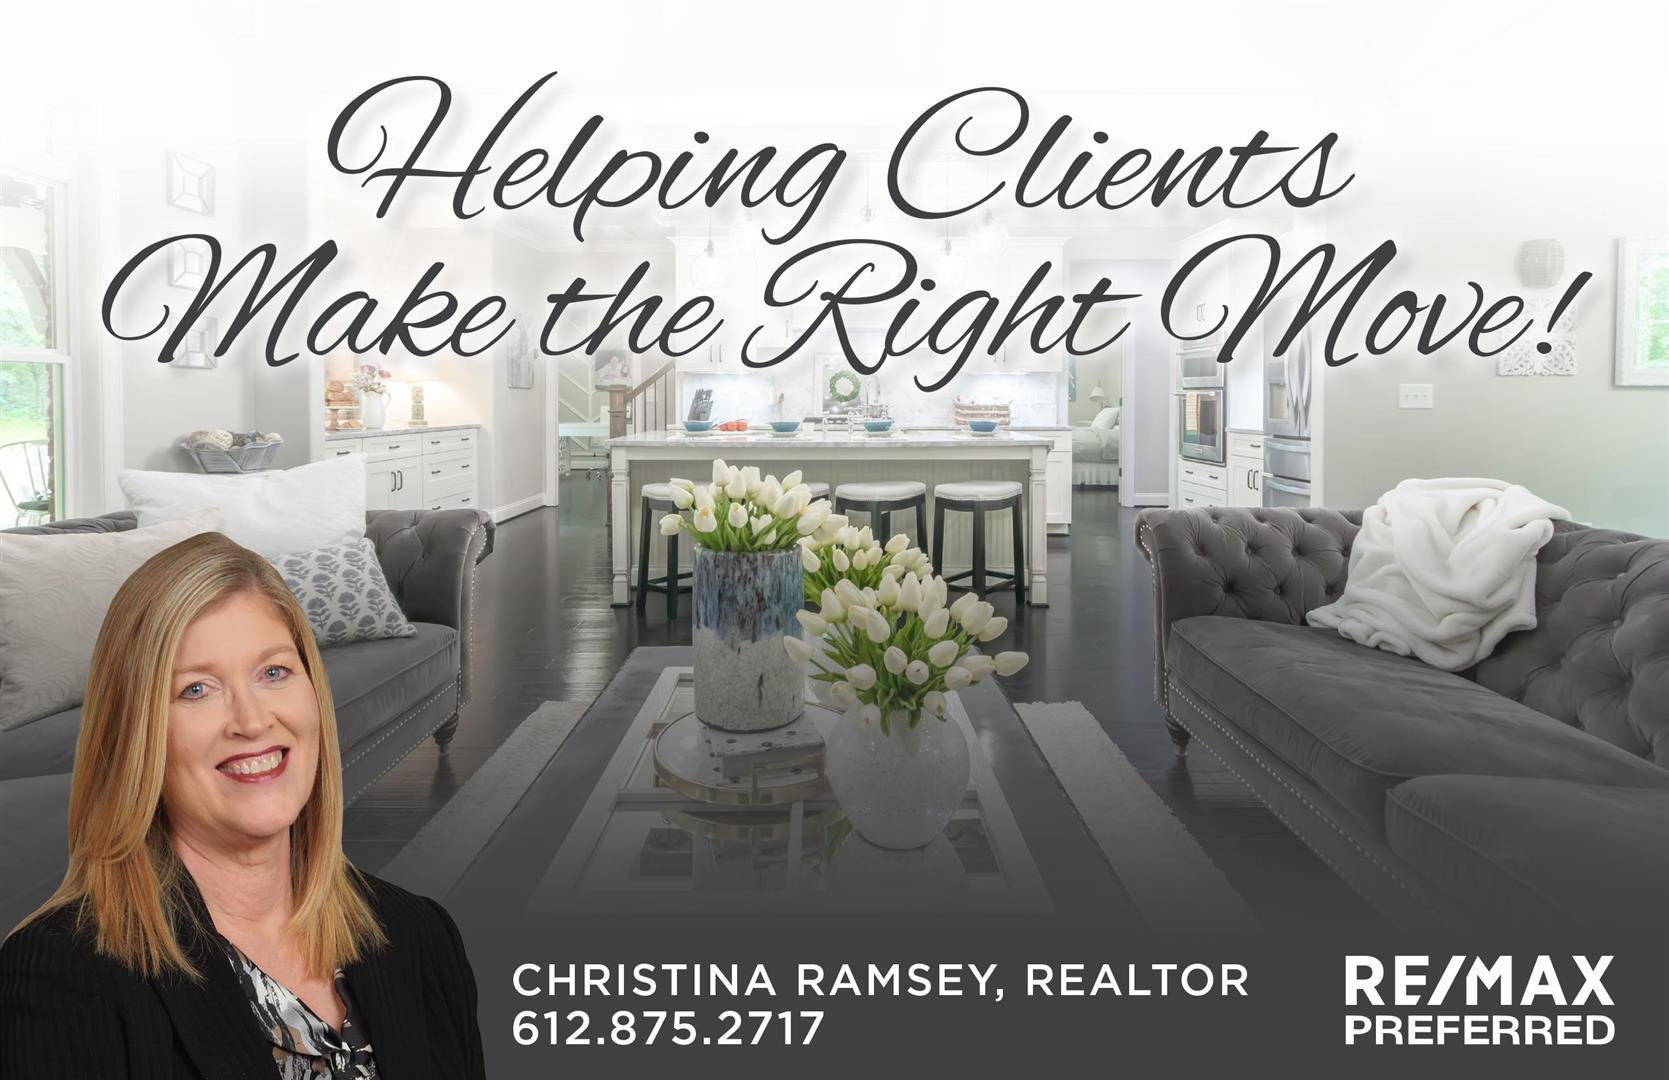 Remax_ChristinaR_HelpingClientsMakeRightMove.jpg